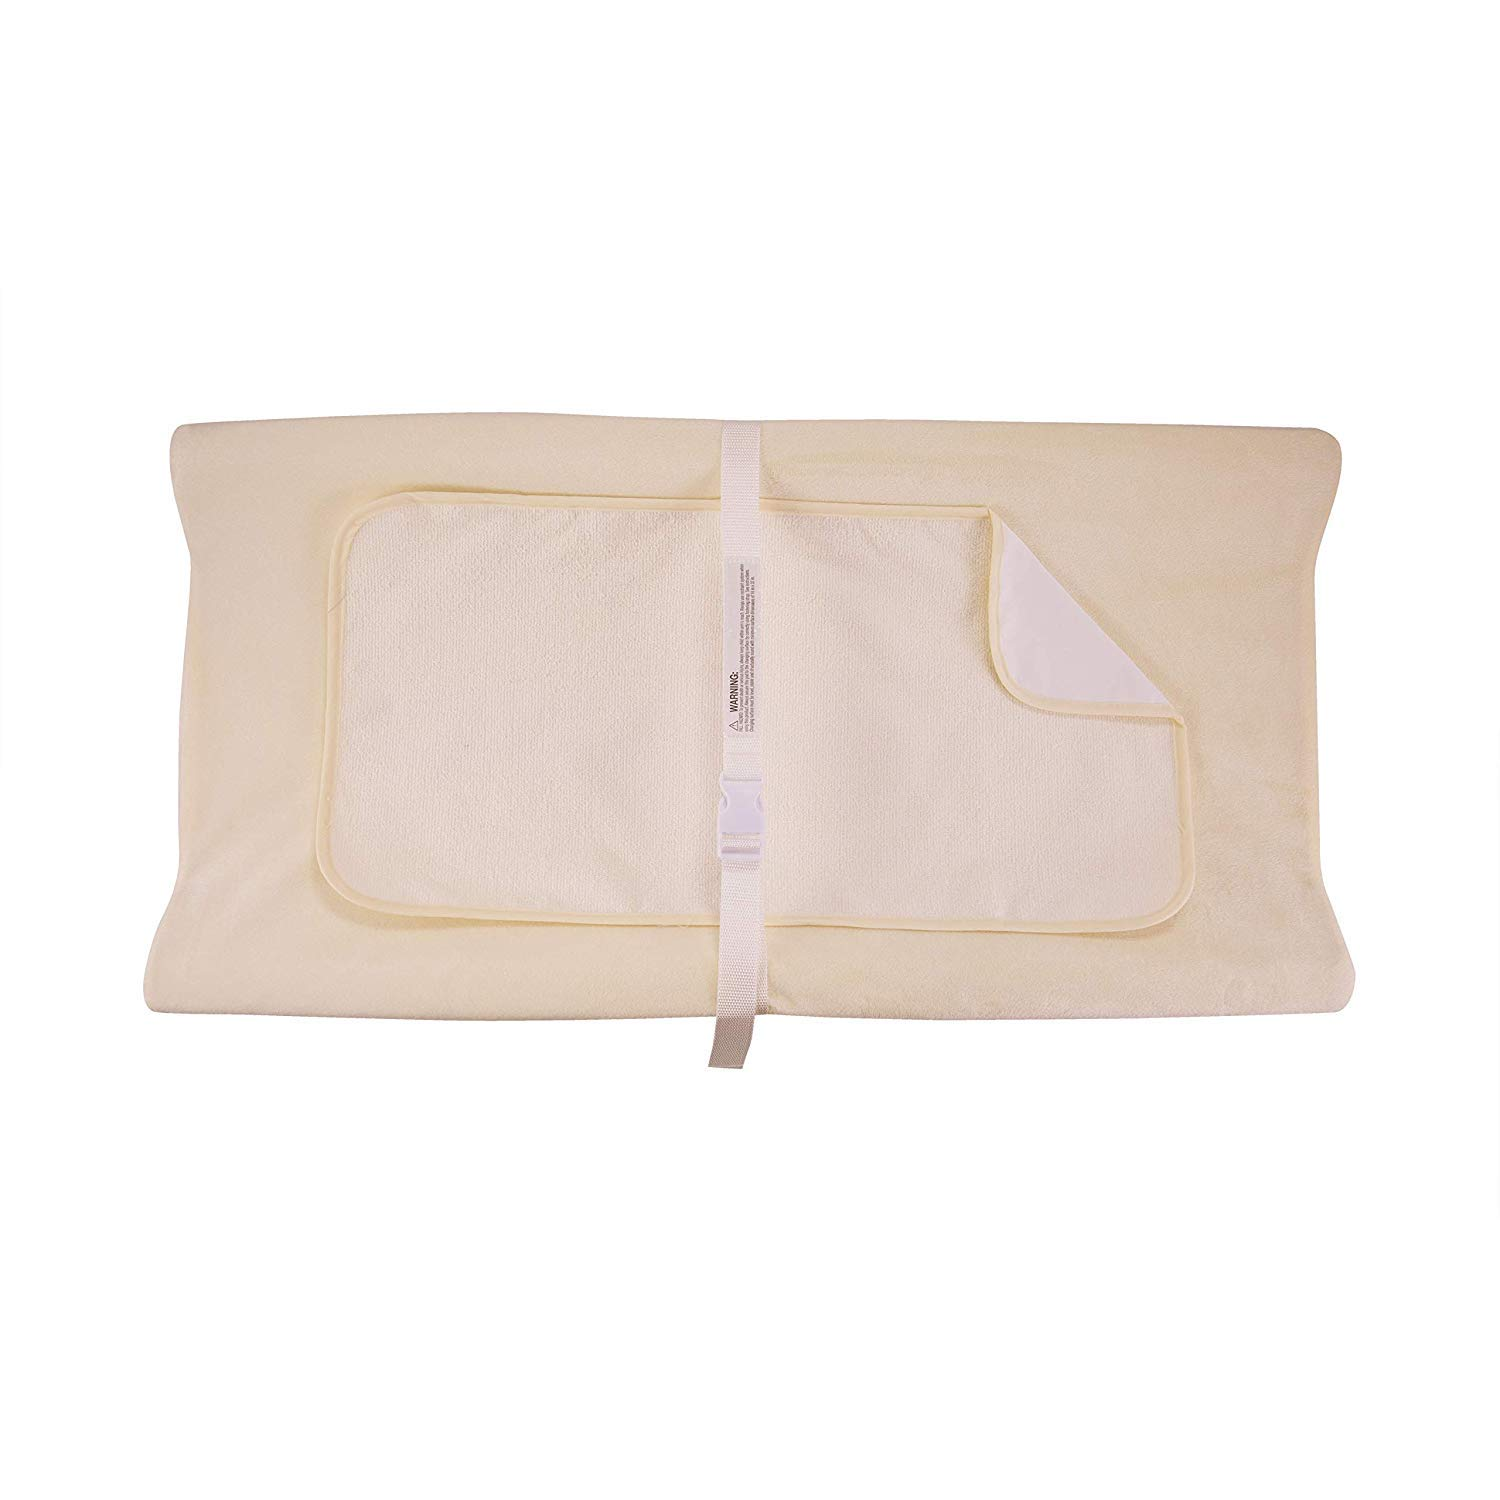 Summer Infant 2-in-1 Convertible Changing Pad /& Mat